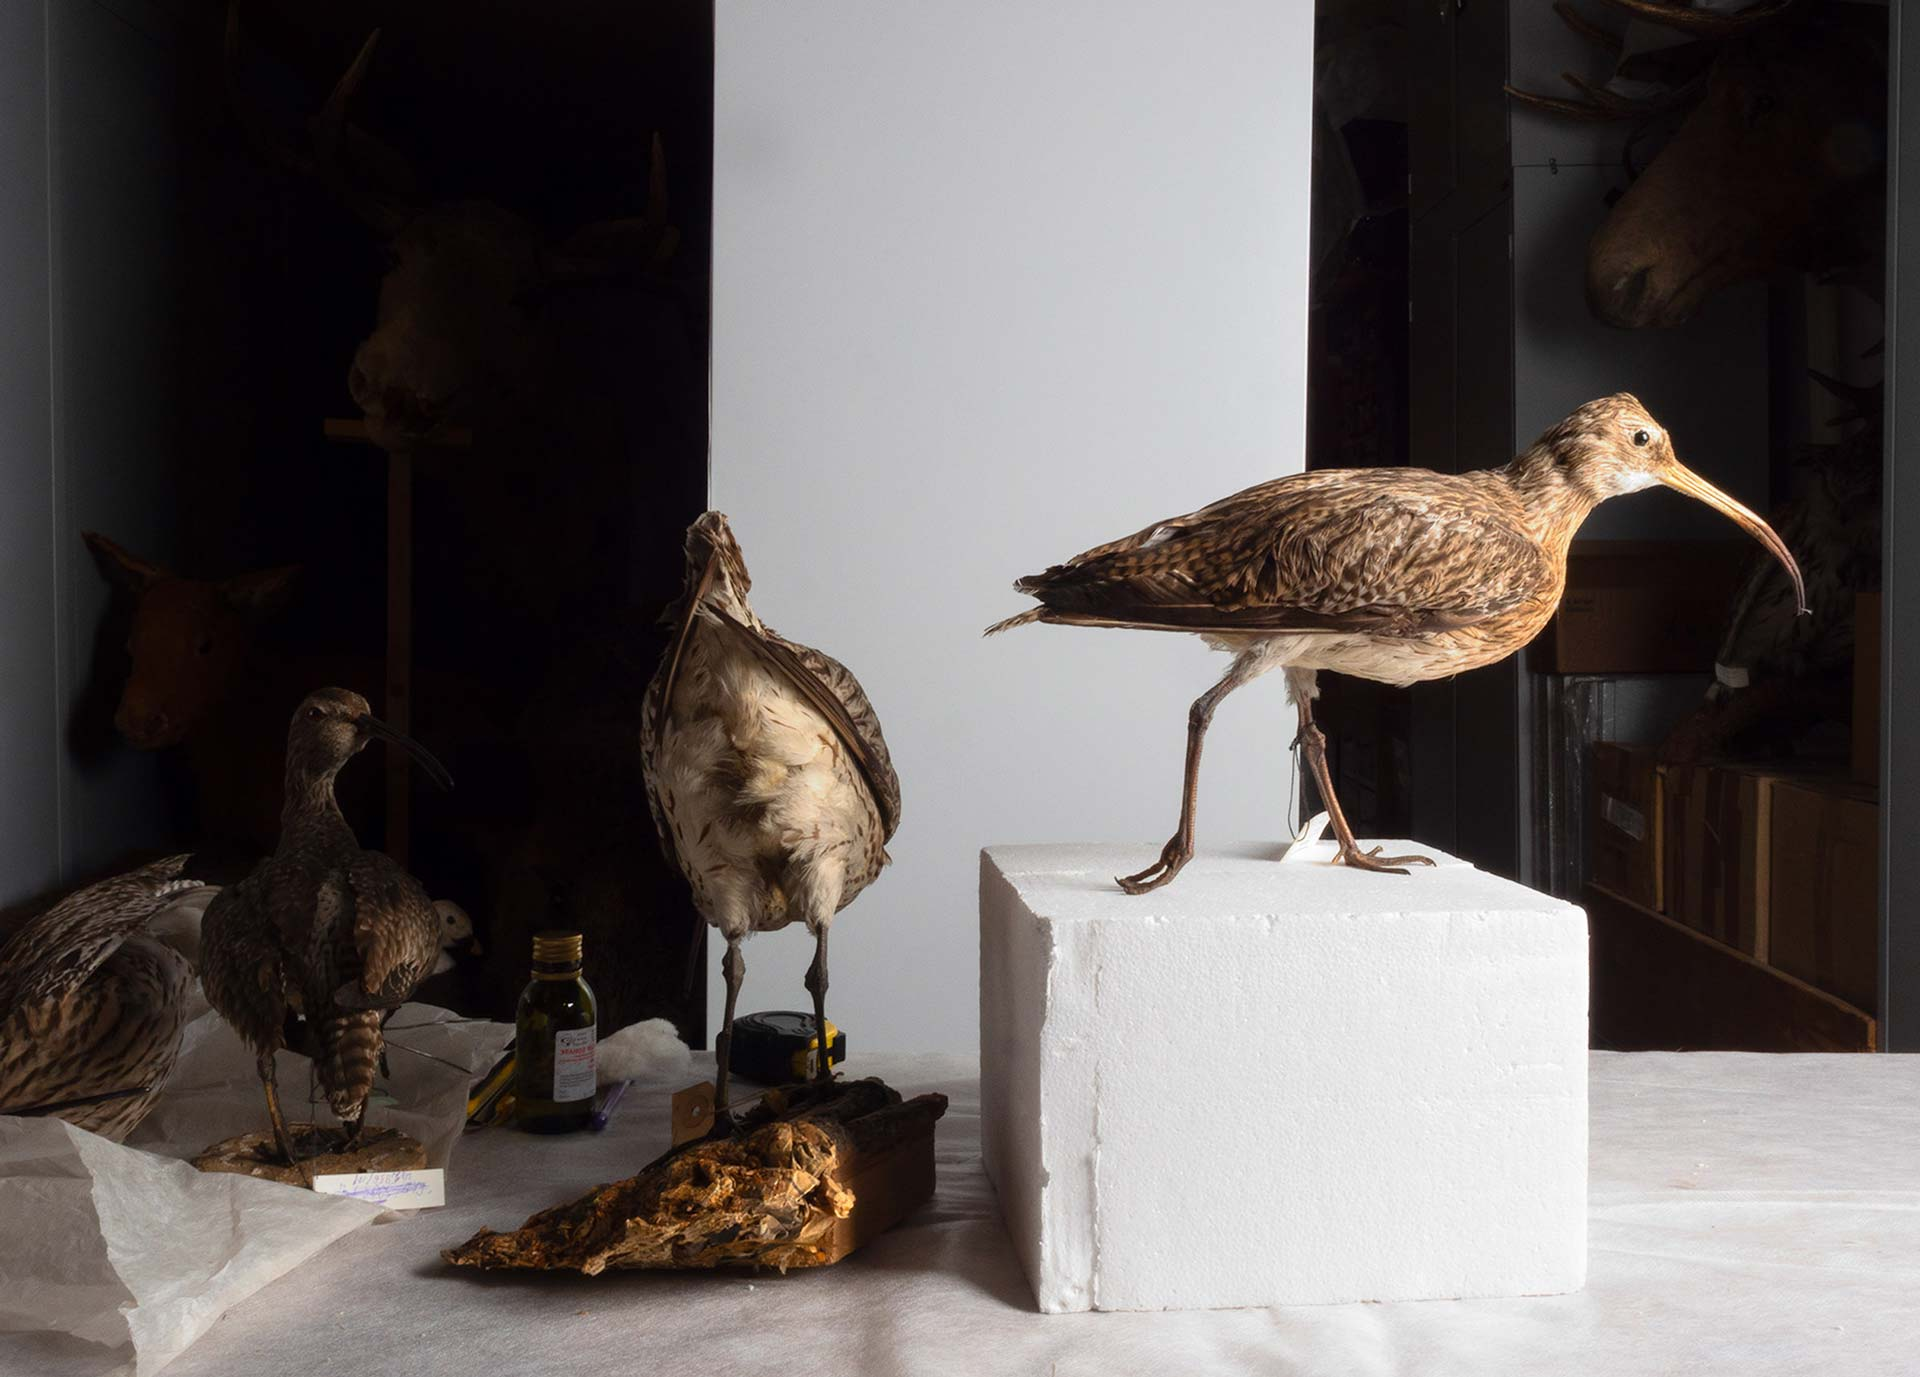 Axel Straschnoy: The Dioramas from the Permian Museum